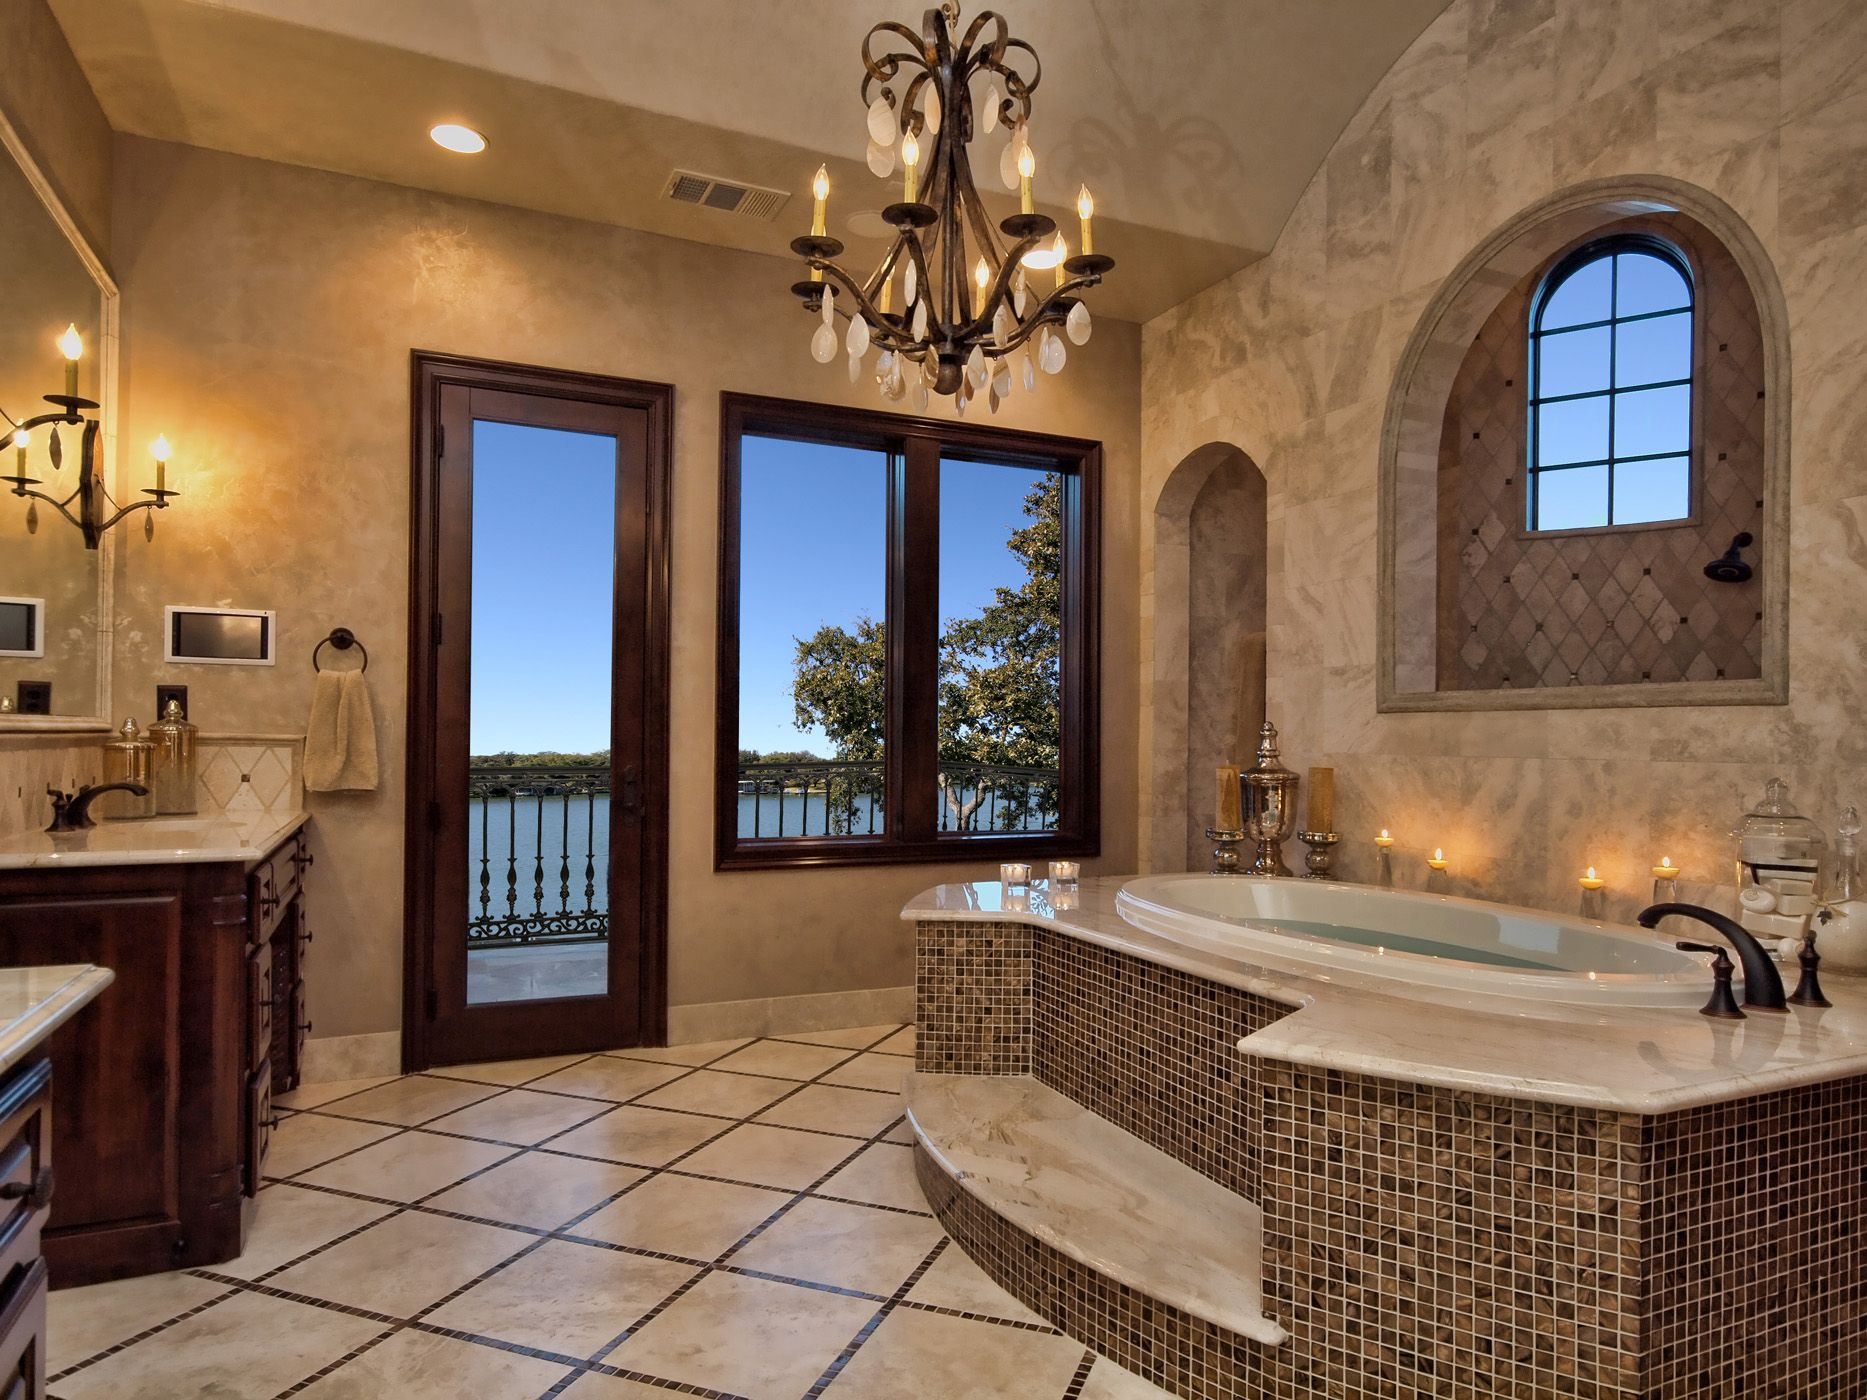 Luxury master bathroom - 21 Luxury Mediterranean Bathroom Design Ideas